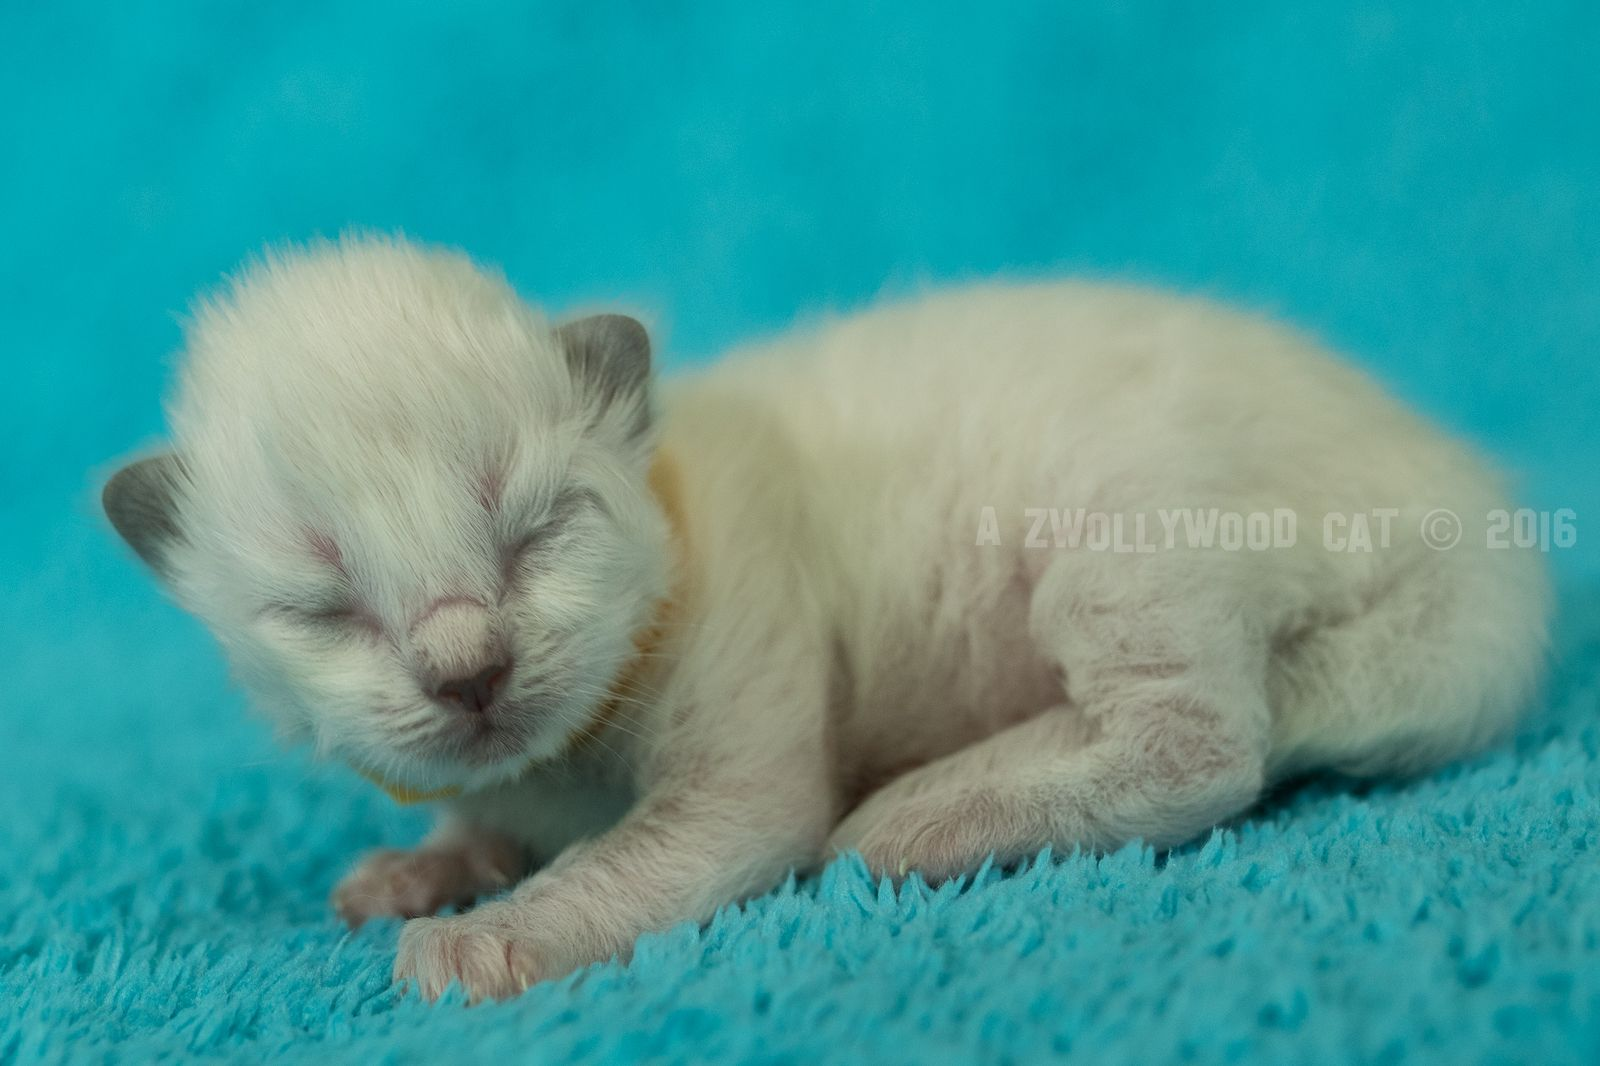 2016 Arya A Zwollywood Cat. 1 Week old. Ragdoll kitten